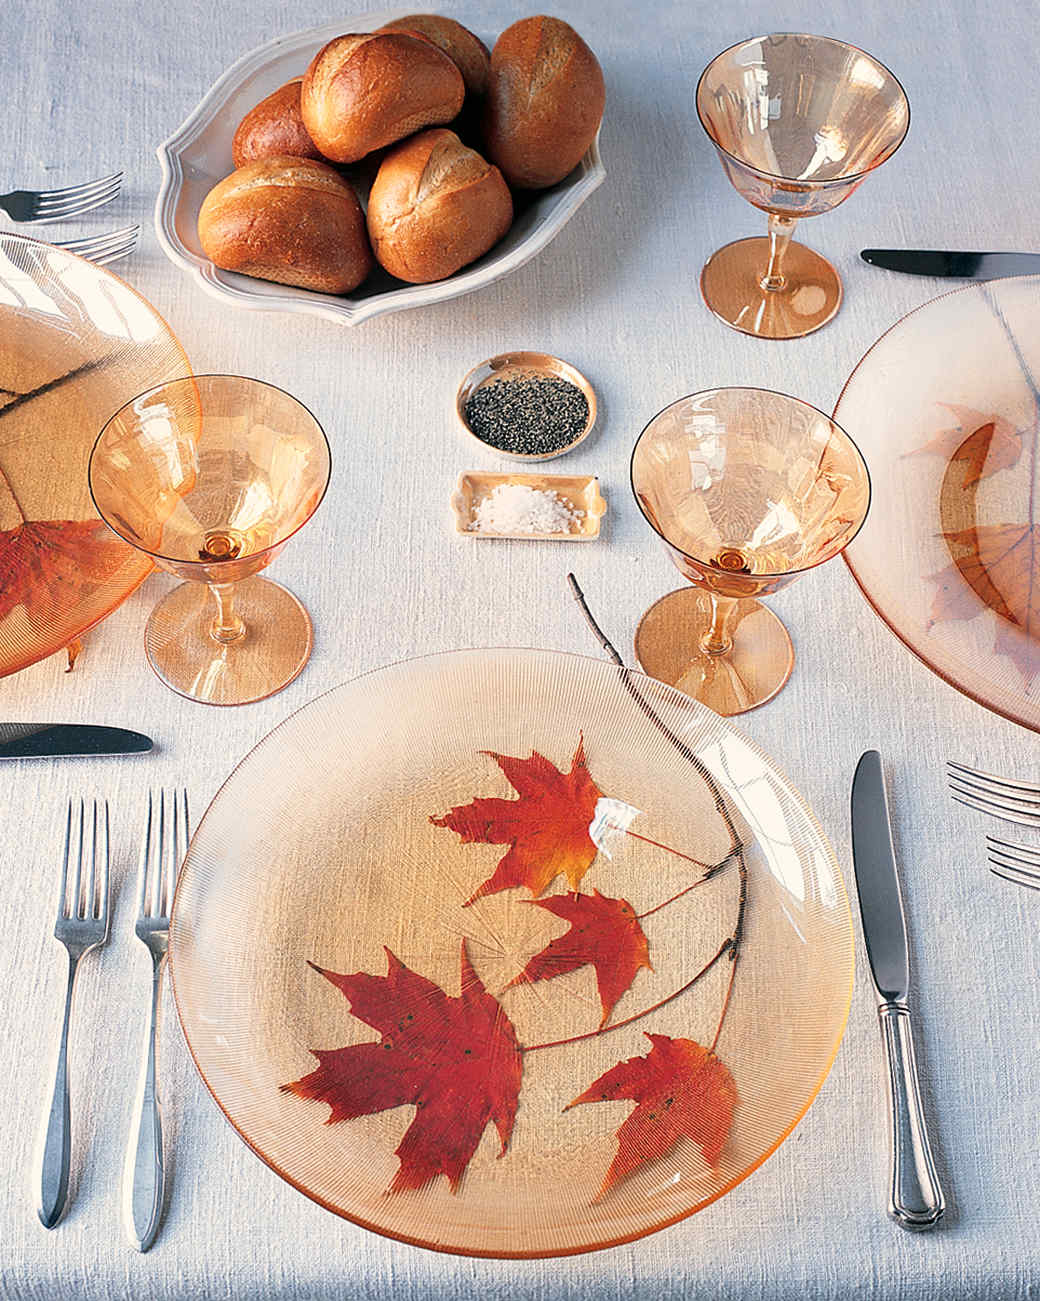 40 thanksgiving table settings to wow your guests - Thanksgiving Table Setting Ideas Easy